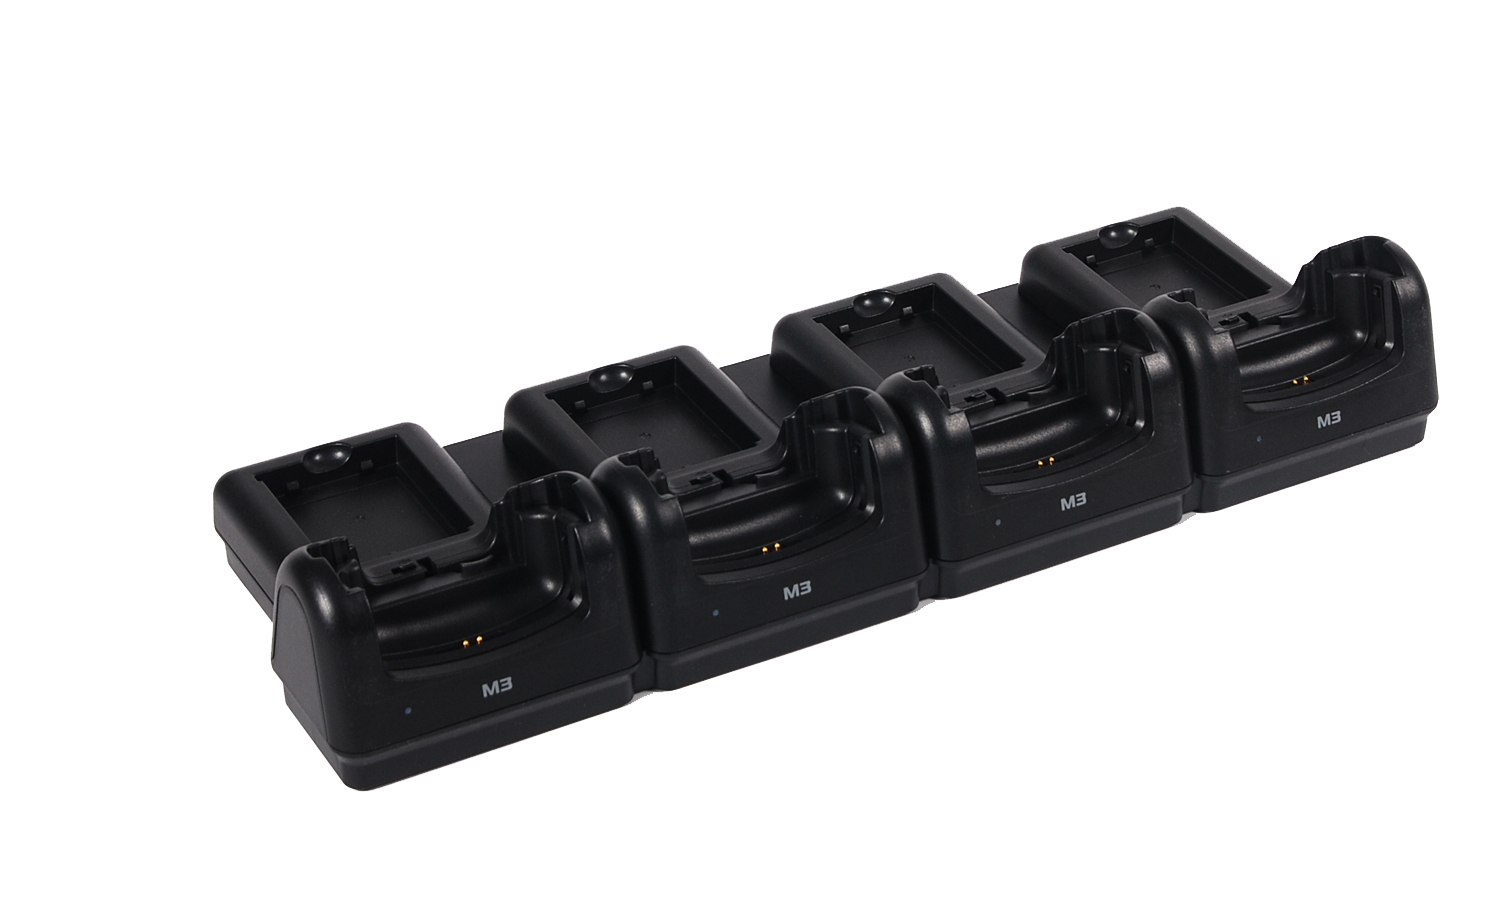 8 Slot charging Cradle